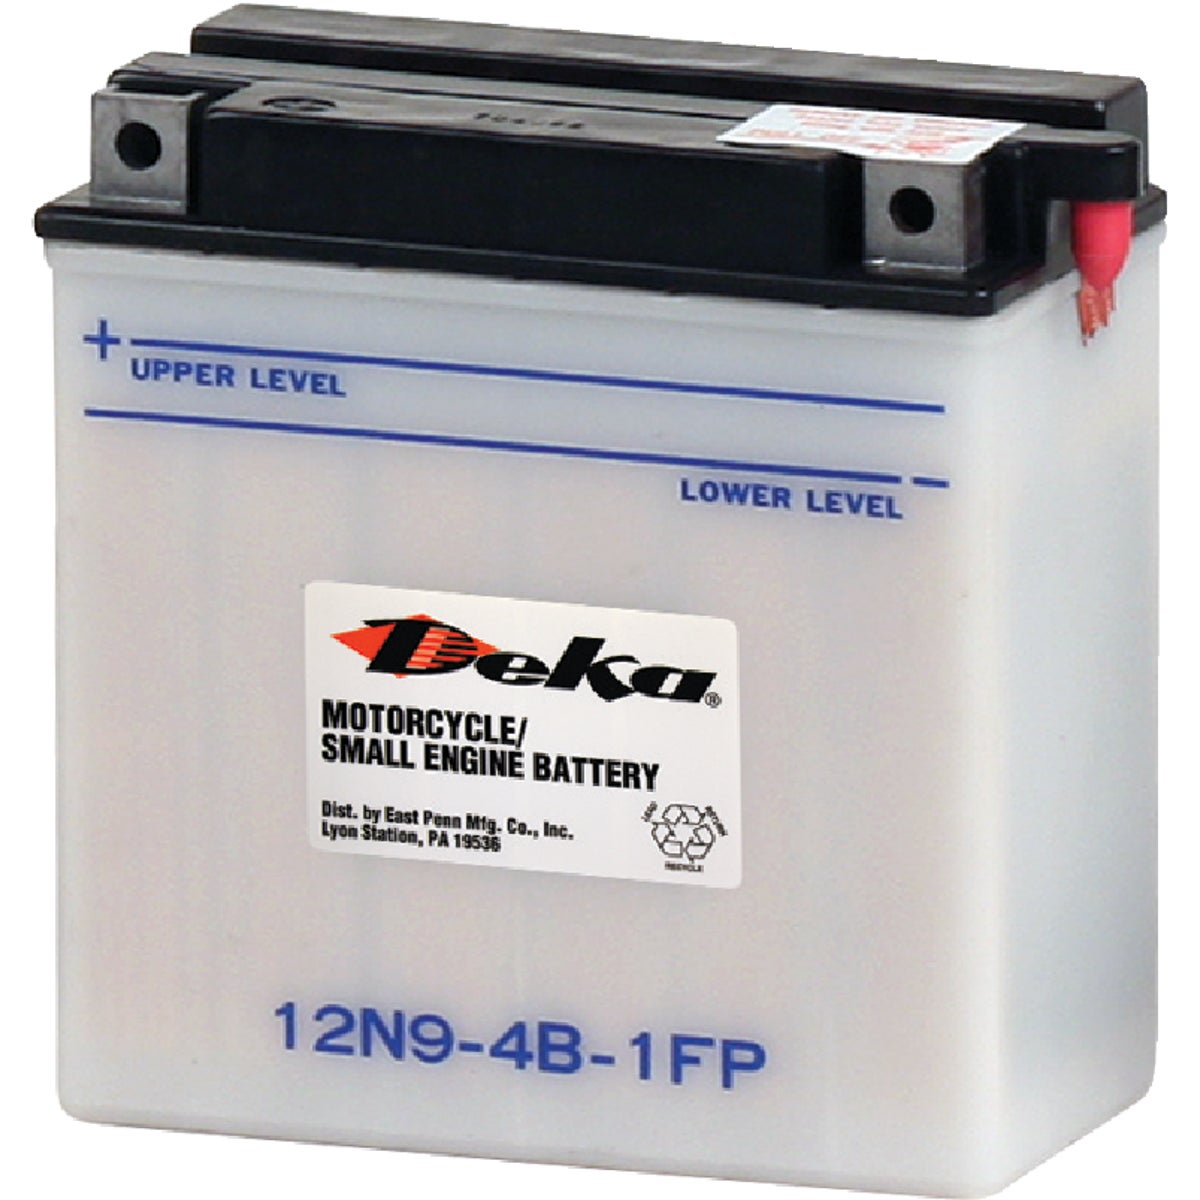 12V SMALL ENGINE BATTERY - 12N9-4B1 by East Penn Mfg. Co.